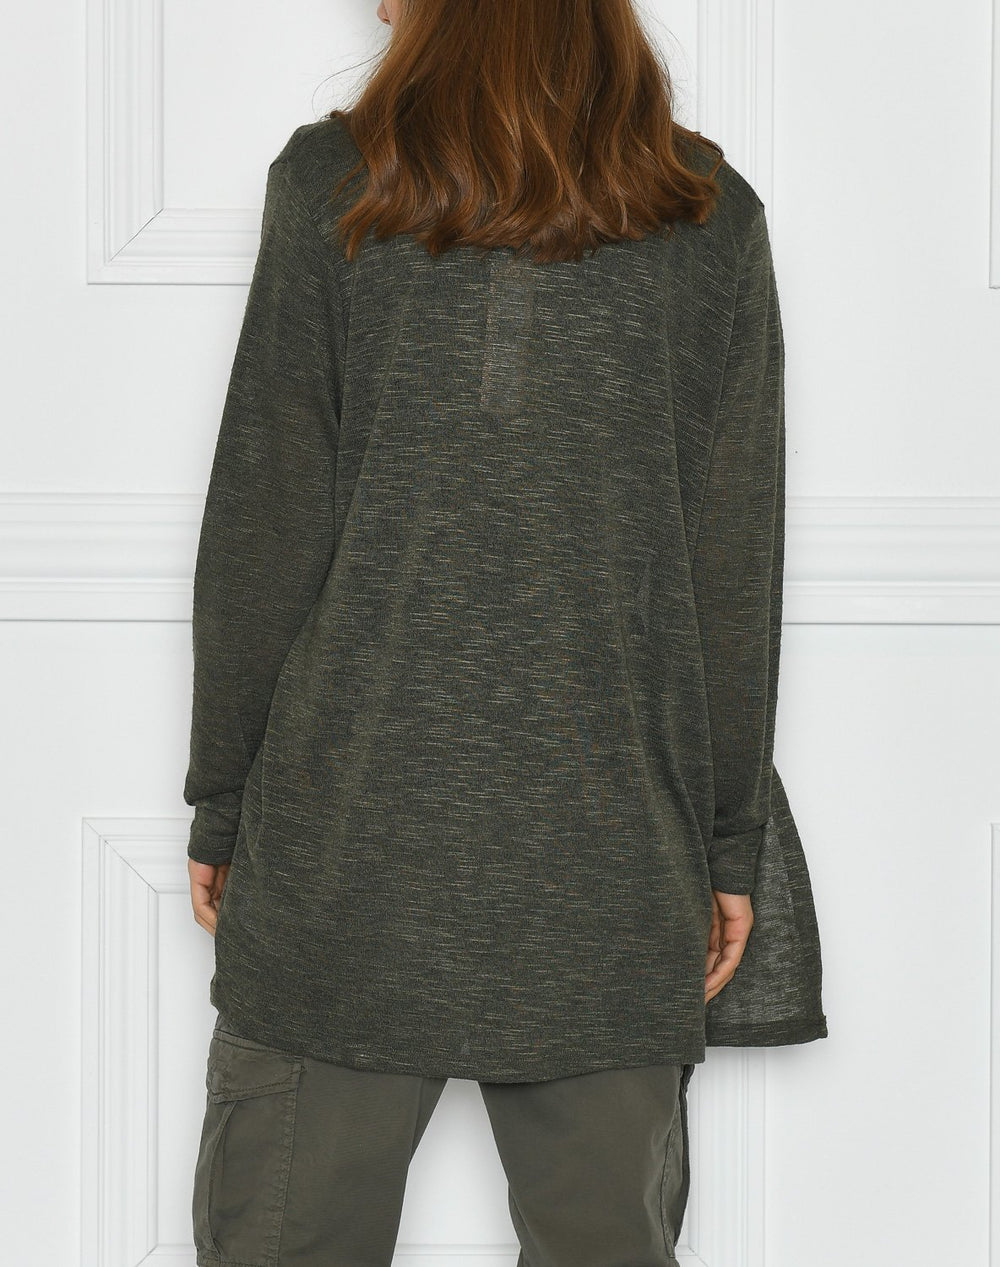 Saint Tropez RoseSZ knit cardigan army green - Online-Mode